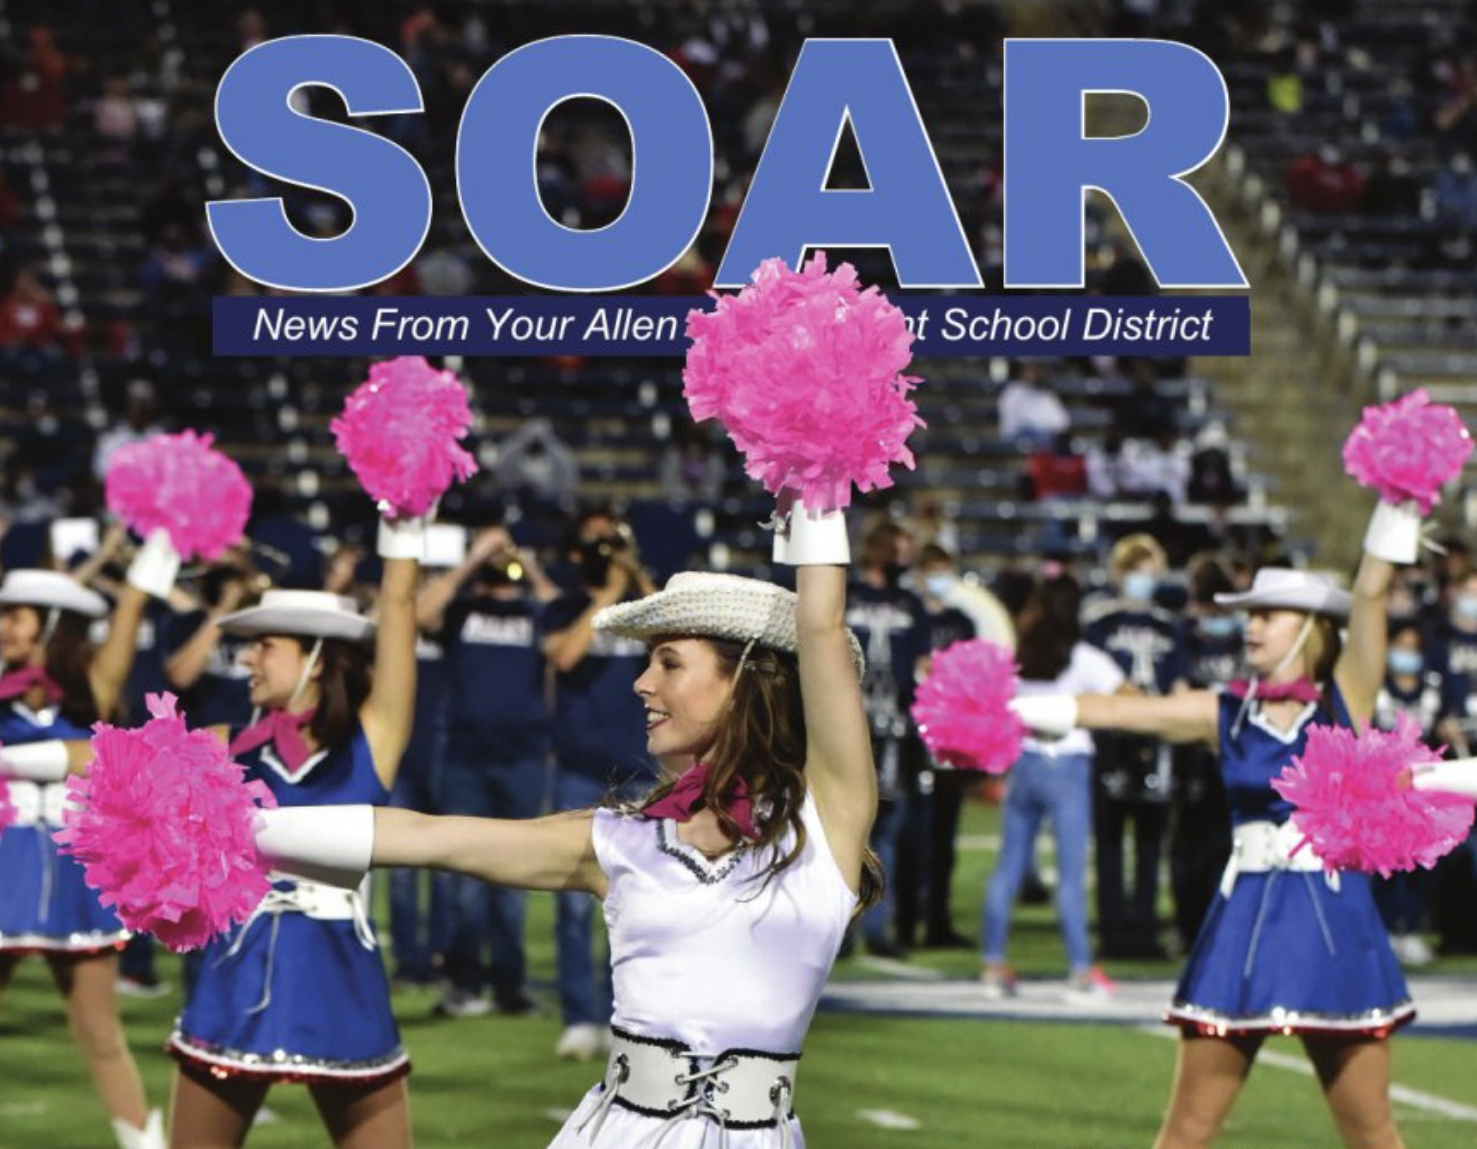 SOAR Winter 2020 Cover